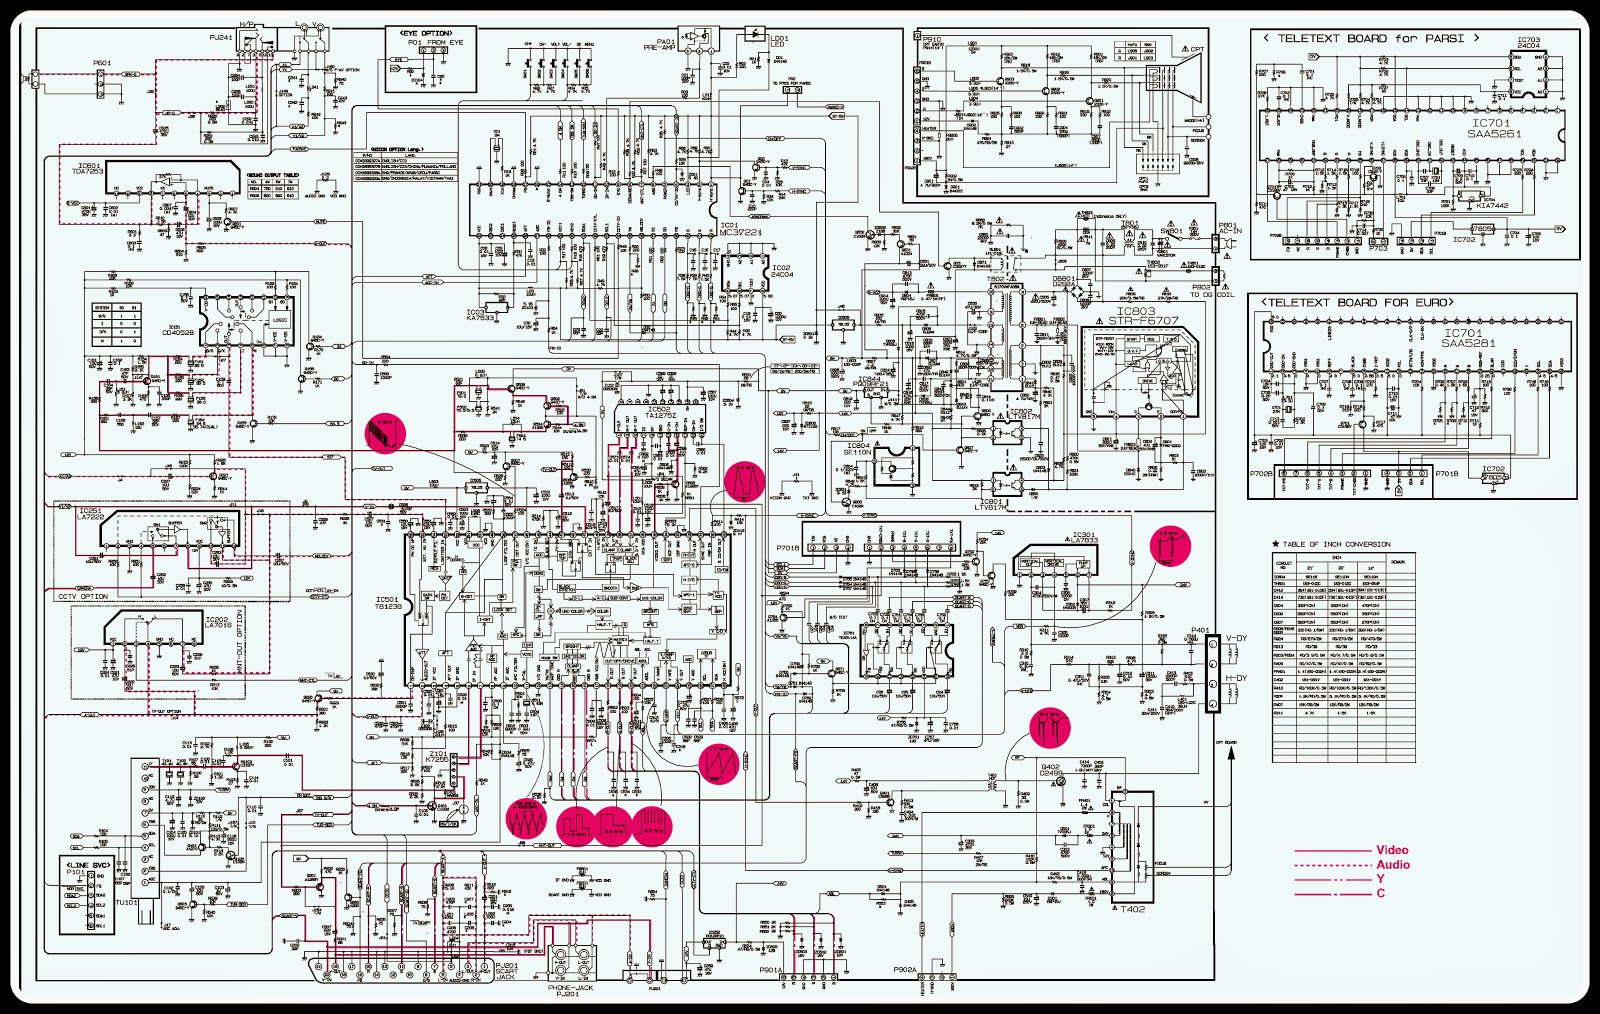 ge nautilus dishwasher wiring diagram images 806 x 612 jpeg 76kb ge microwave oven wiring diagram a guide